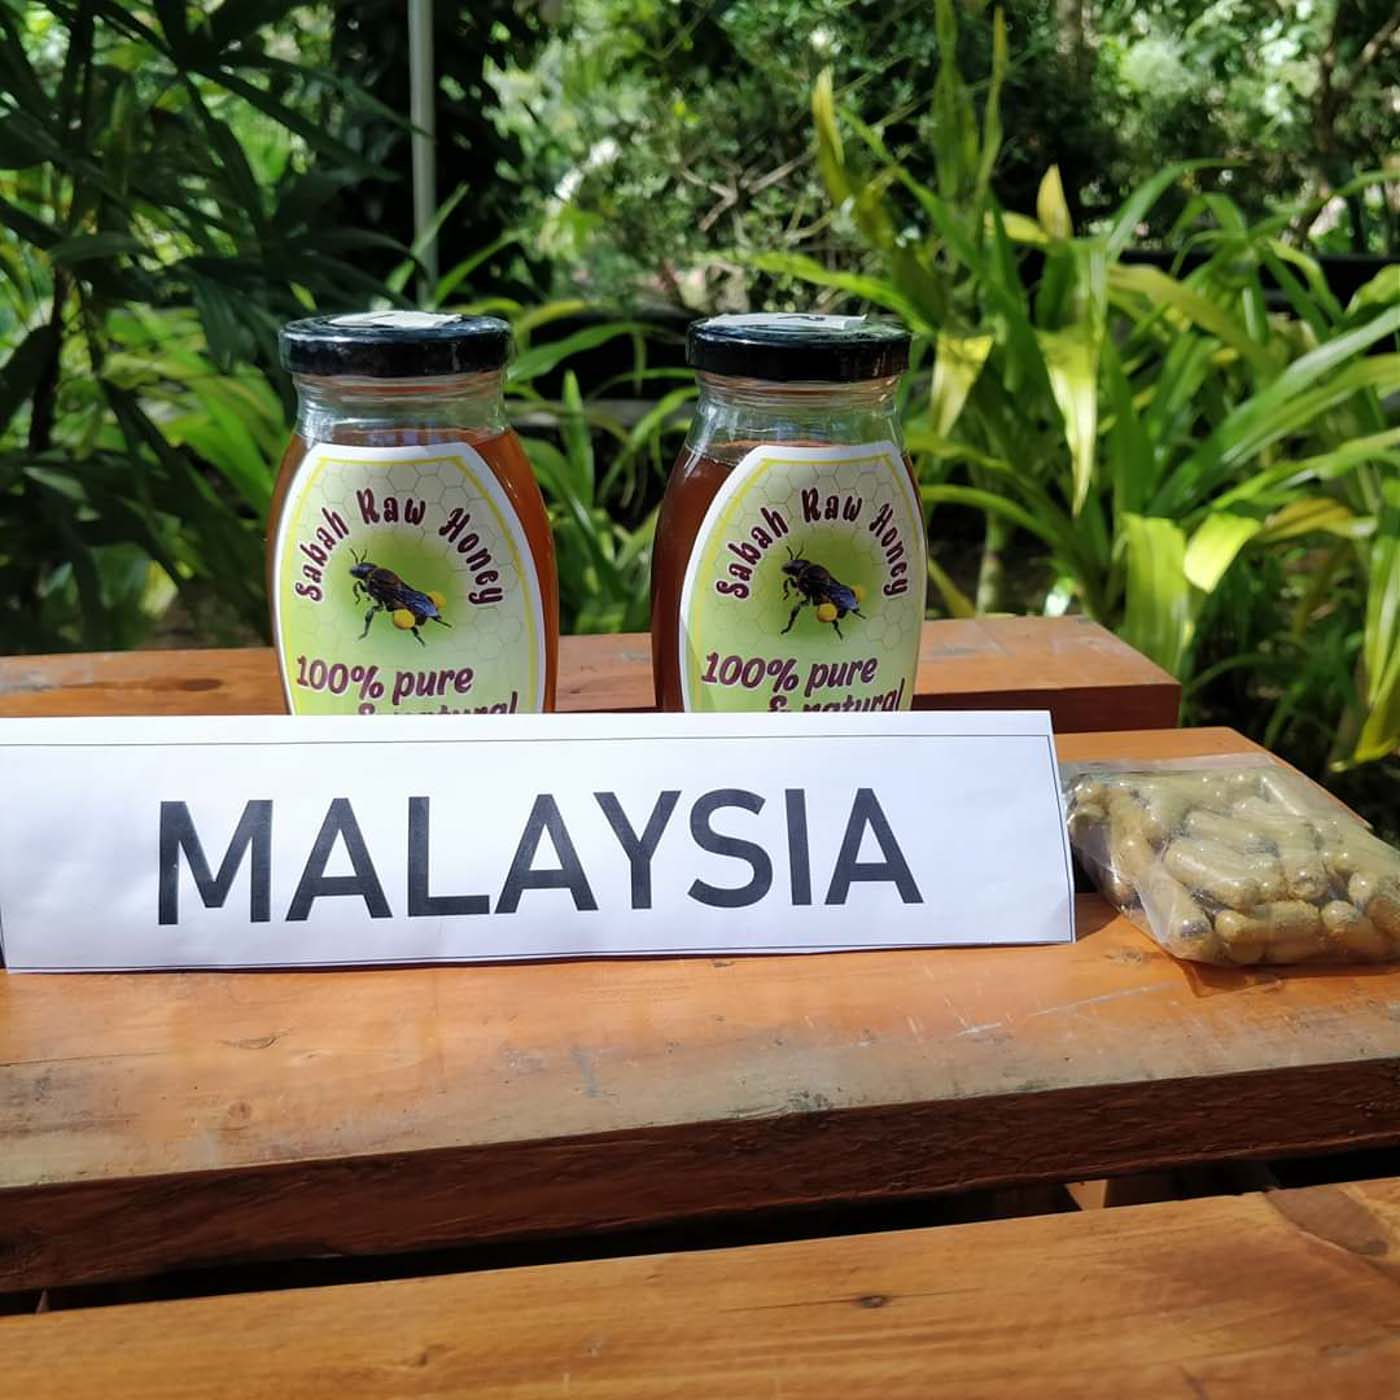 According to a study, Malaysian honeys are pure, strong antioxidants with abundant sources of minerals essential for the human diet, growth, and health. Photo courtesy of Non-TImber Forest Products-Exchange ProgramPhoto courtesy of Non-TImber Forest Products-Exchange Program